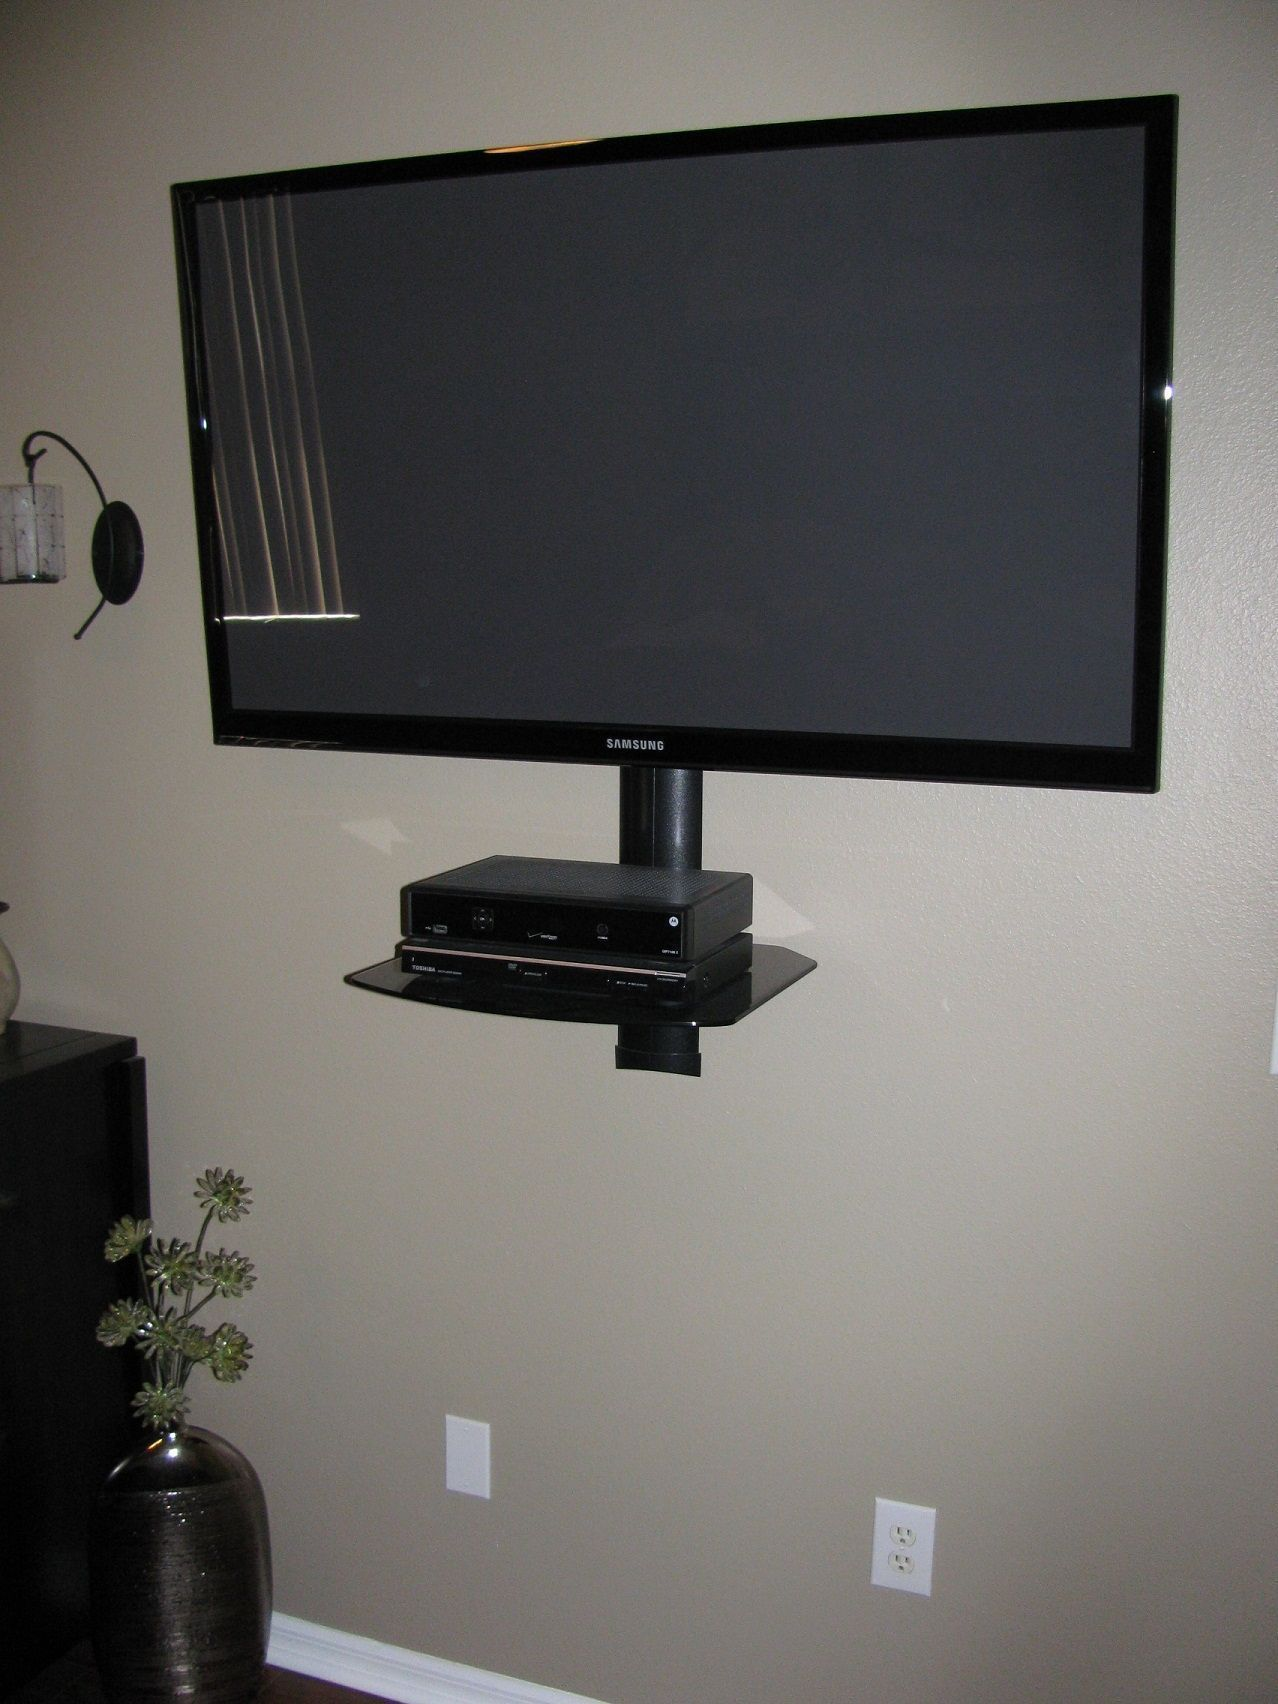 Tv Wall Mounts With Shelf For Cable Box